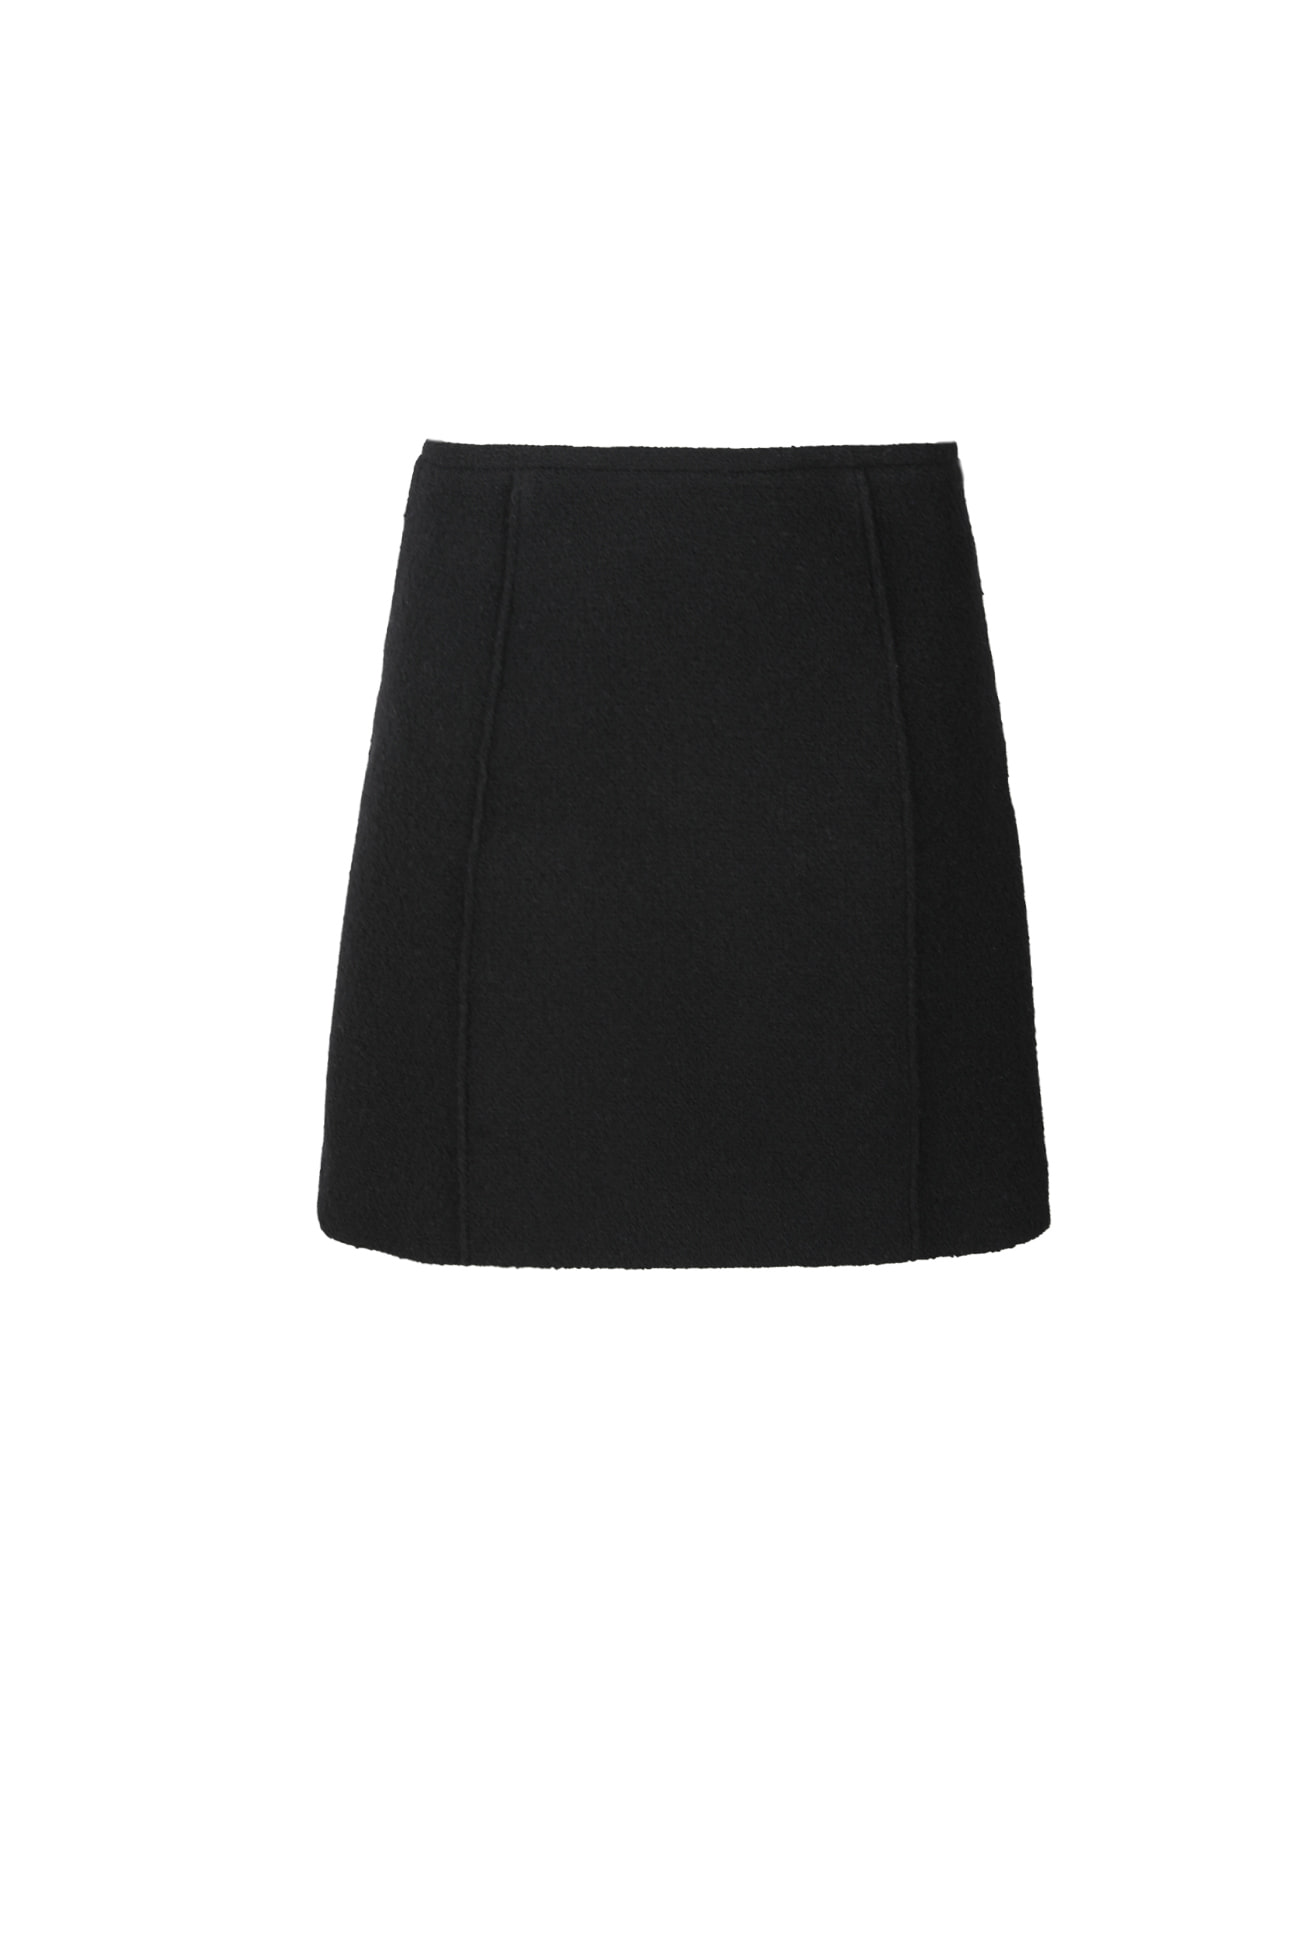 HIGH QUALITY LINE -BLACK Tweed Mini Skirt (BY. japan fabric)